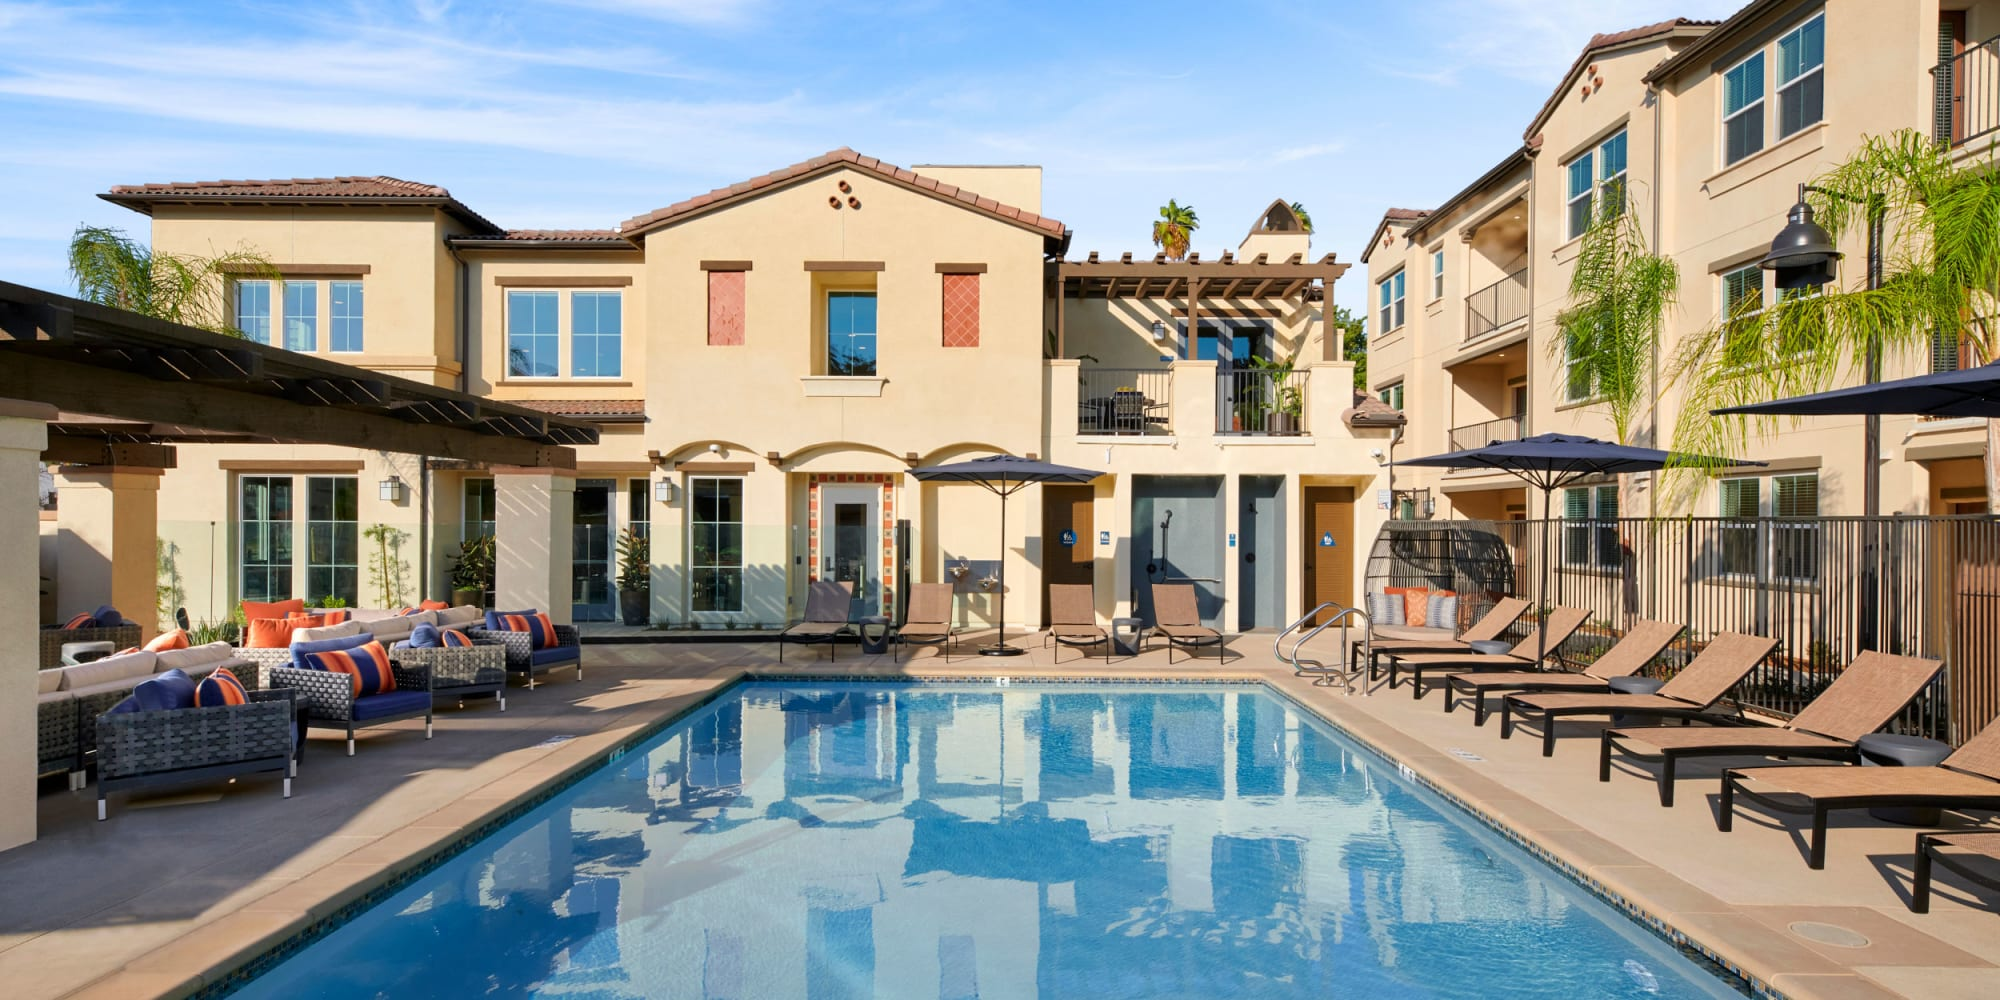 The REMM Group Announces Leasing of Van Daele Development's Lincoln Village Apartment Community in Riverside, California